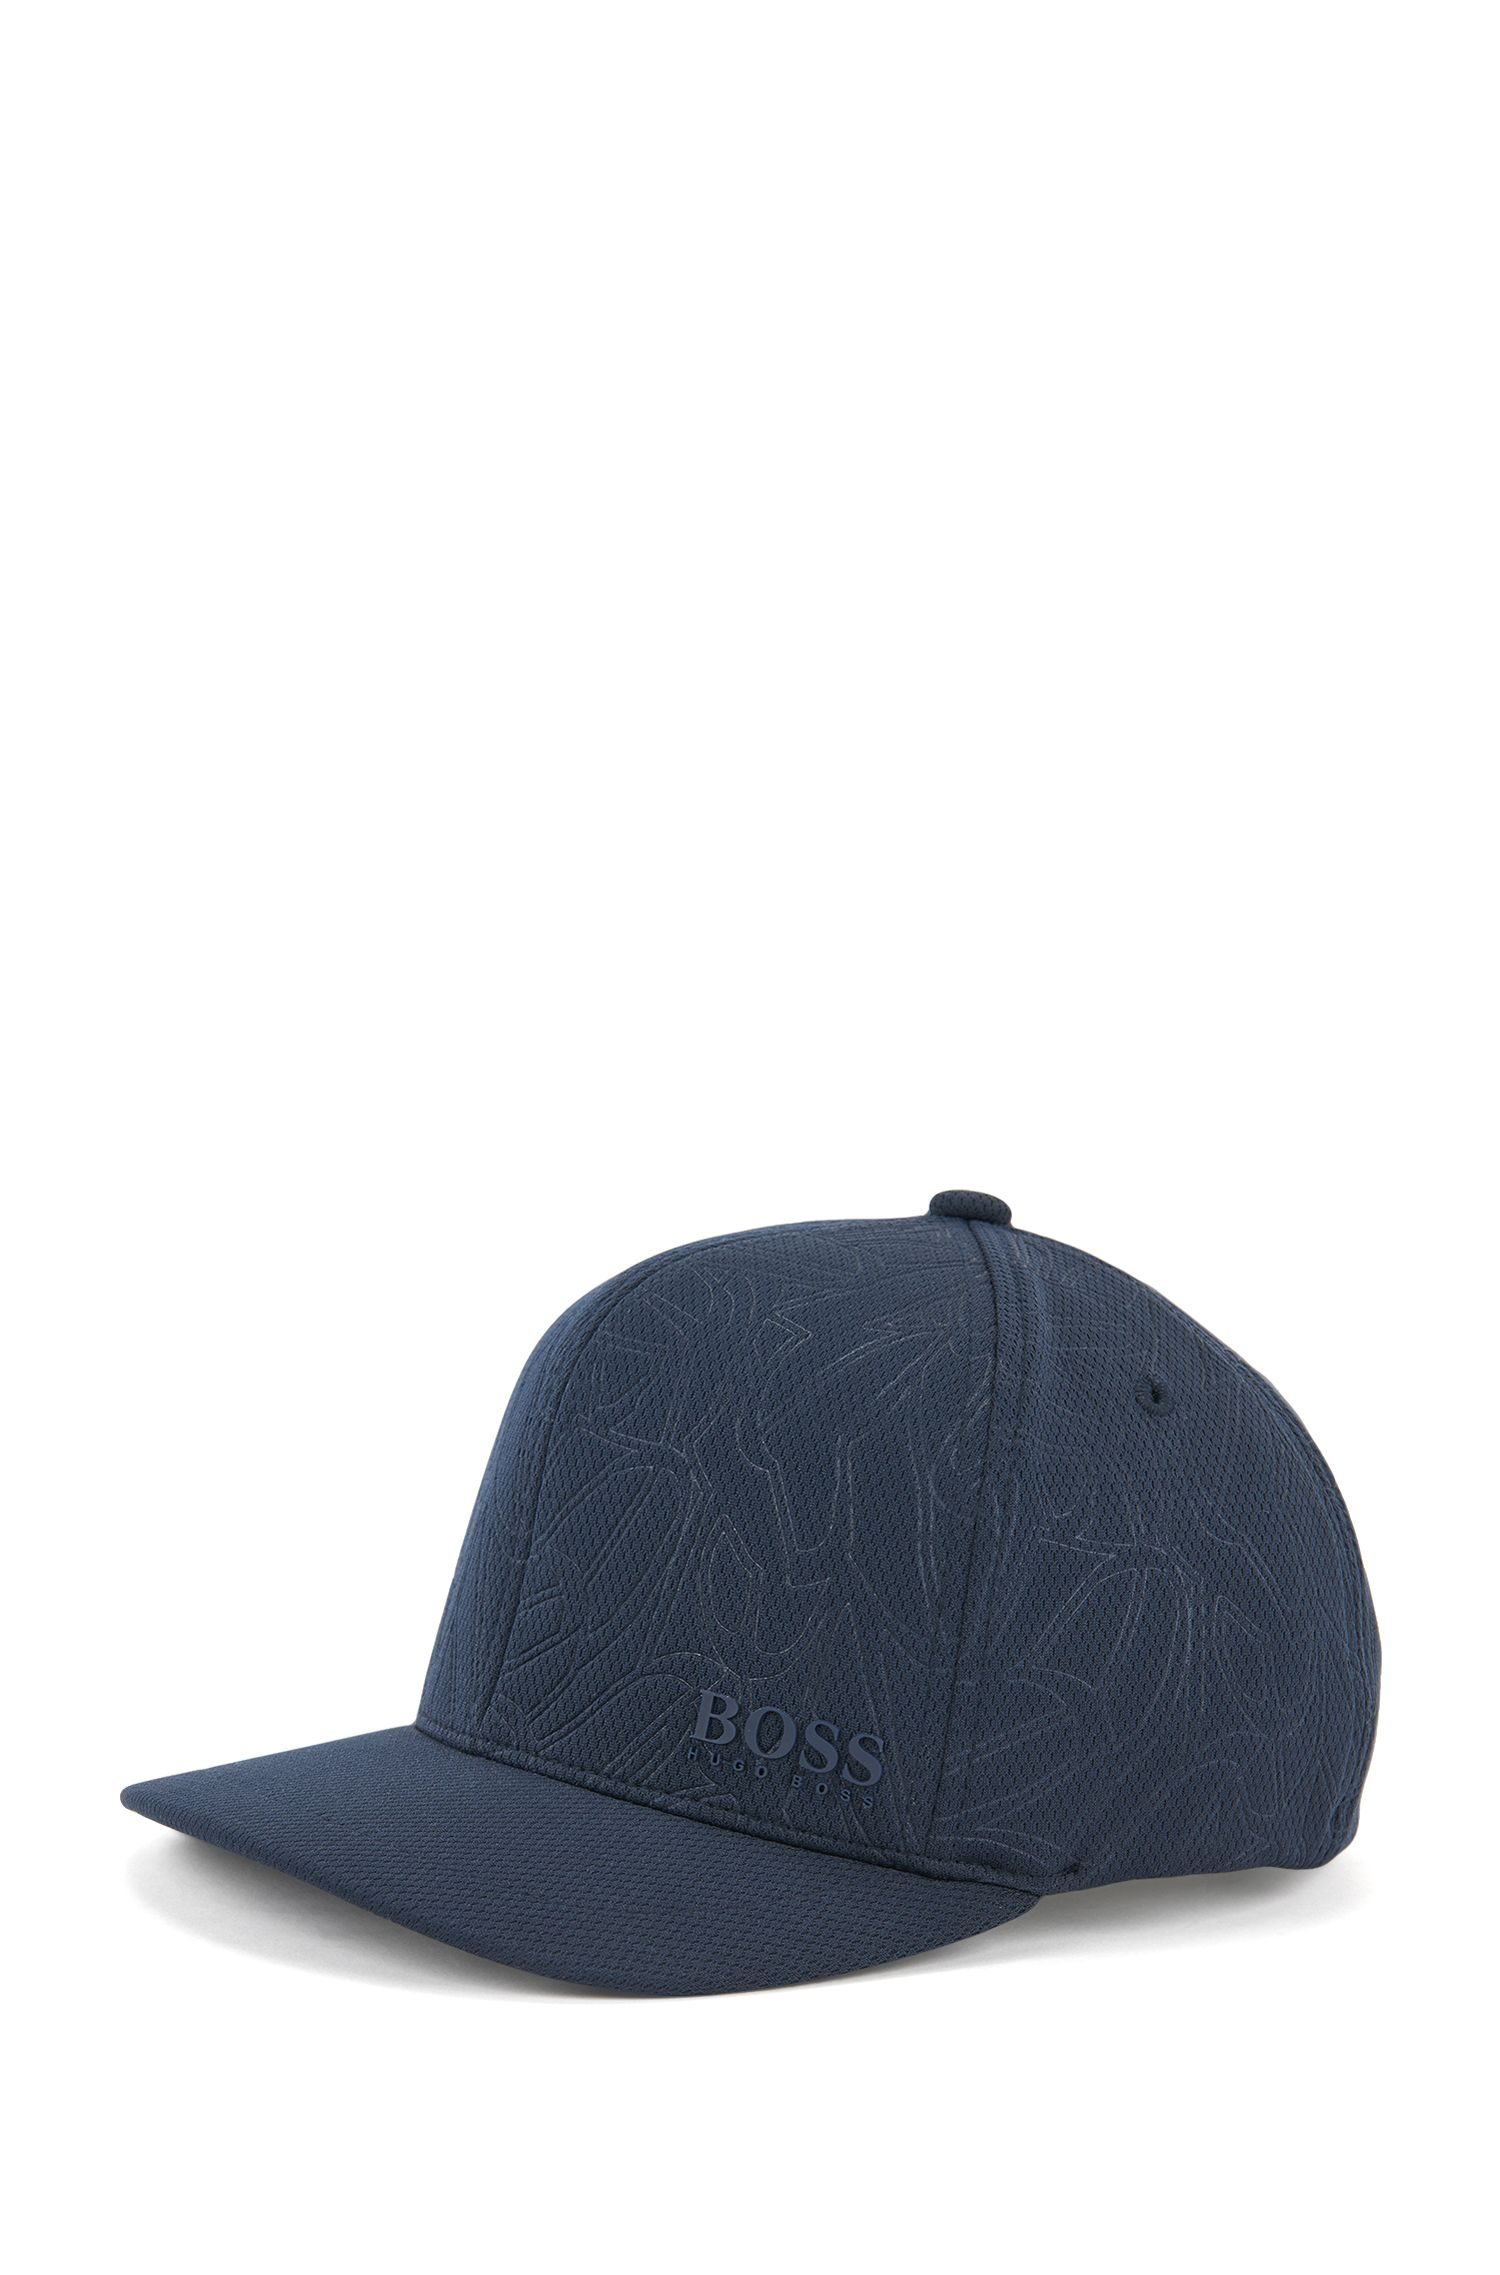 Honeycomb Woven Baseball Cap | Printcap, Dark Blue